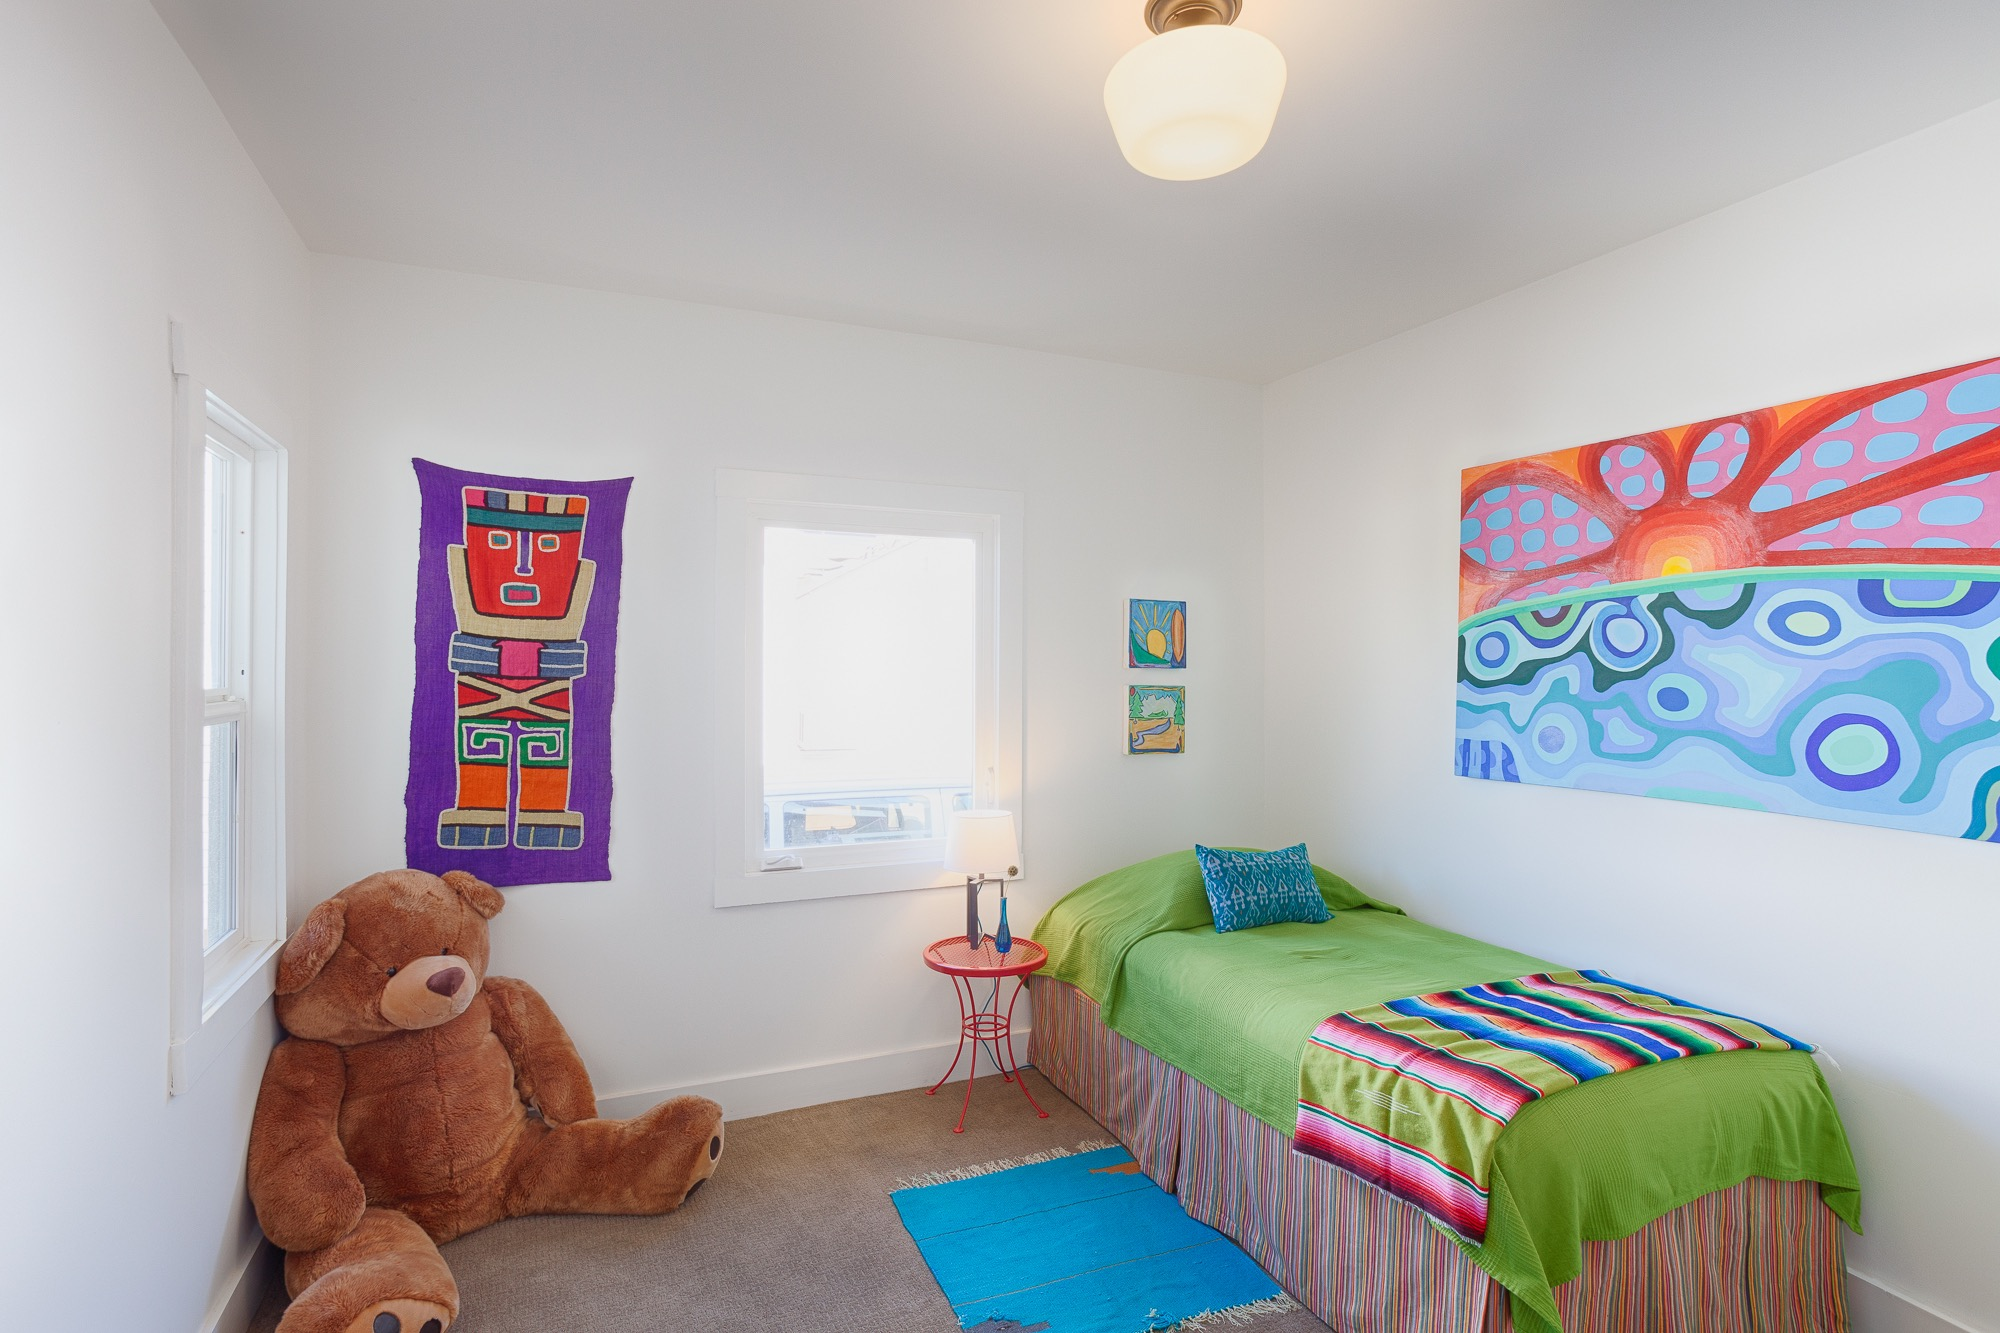 Multicolored Kids Bedroom With Big Teddy Bear (Image 24 of 35)